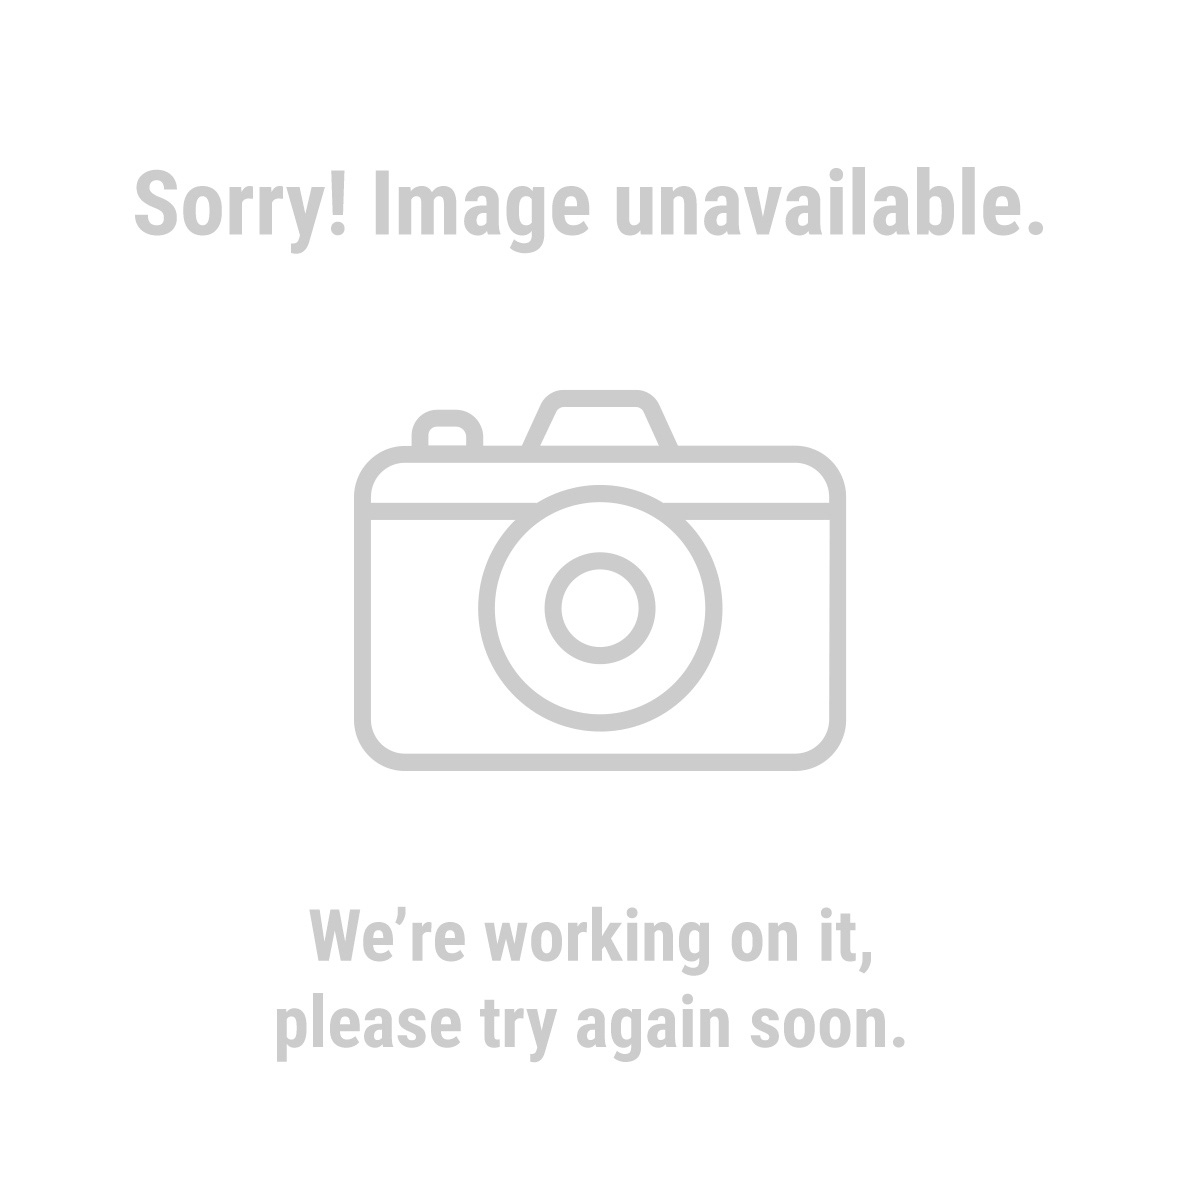 18 Volt NiCd Replacement Battery